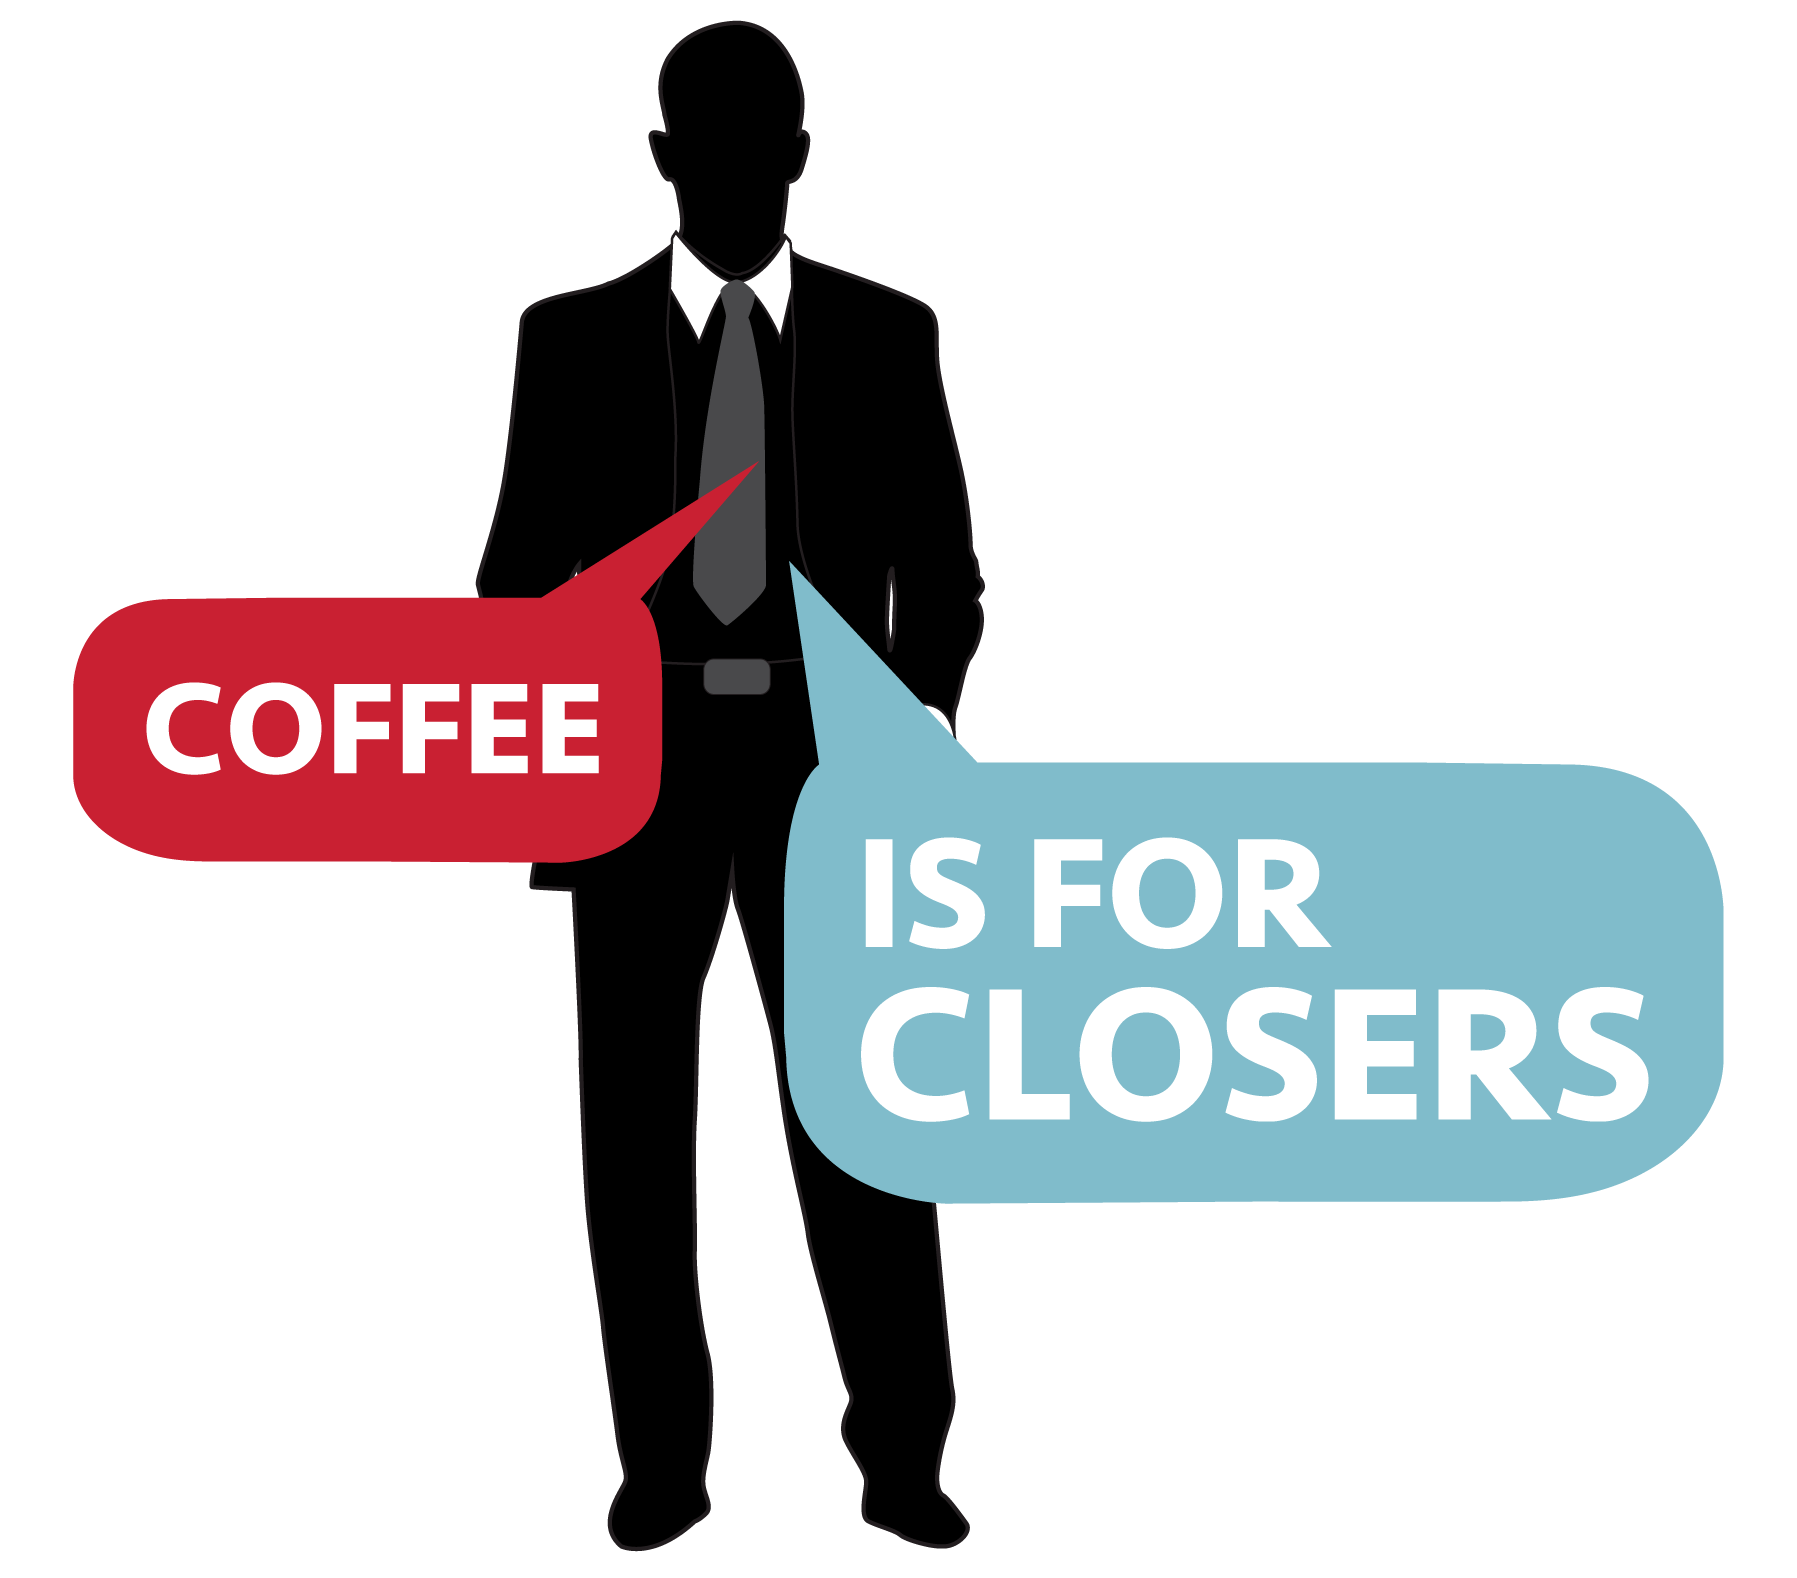 Coffee Is For Closers